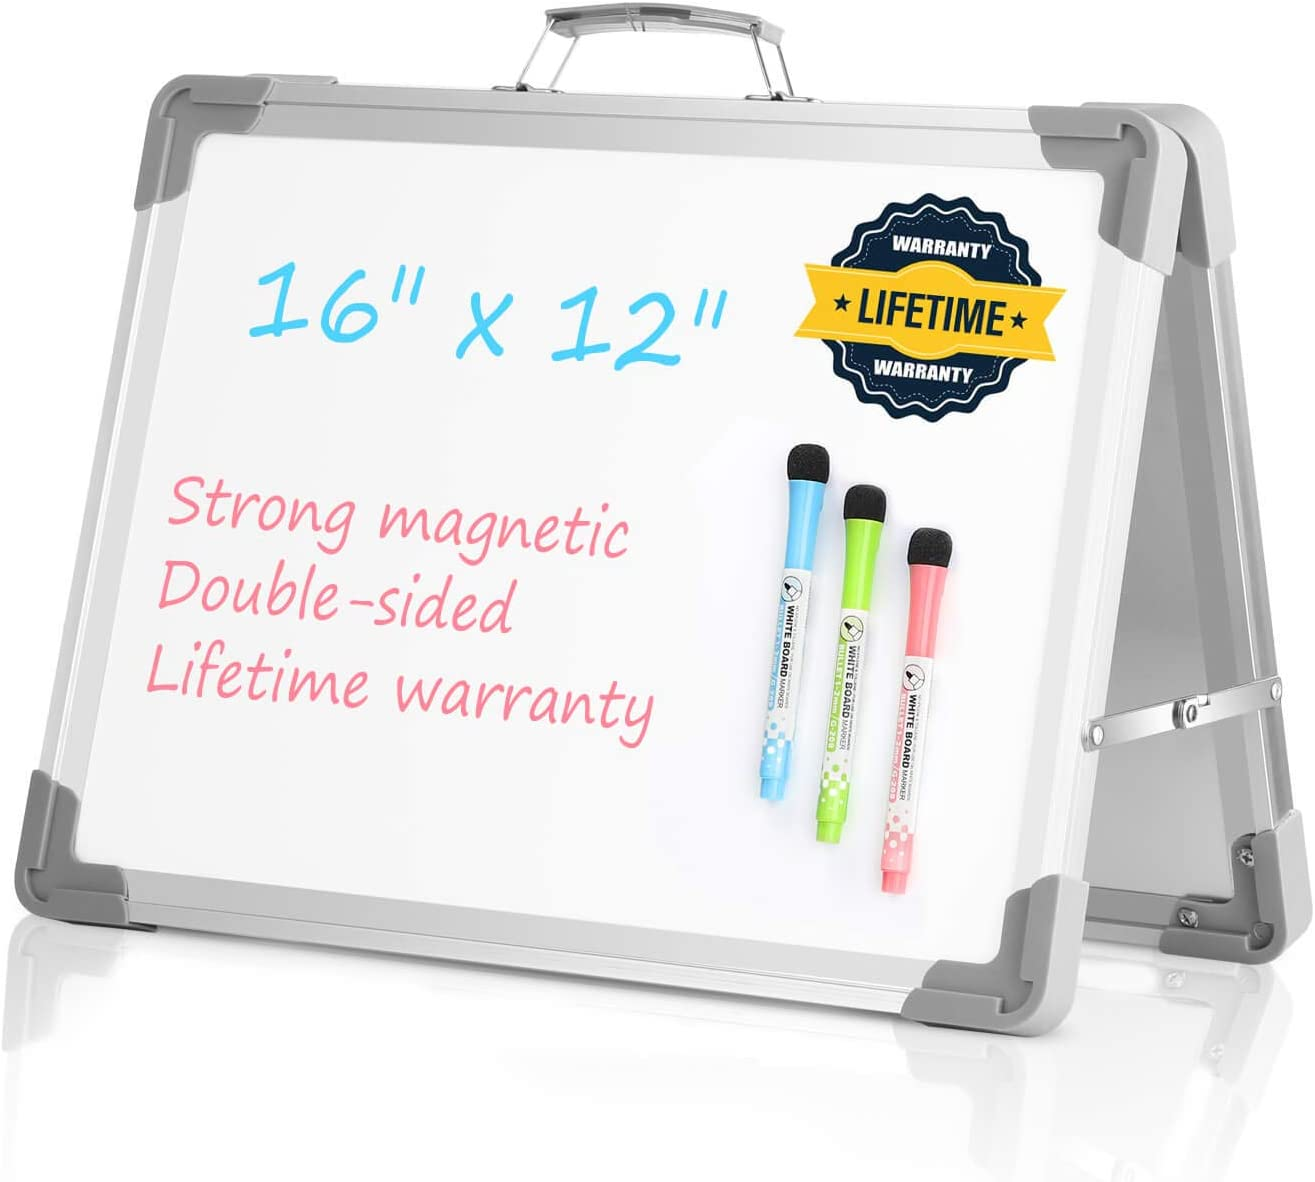 Small Dry Selling Erase White Board Foldable Desktop Magnetic – Whi Many popular brands